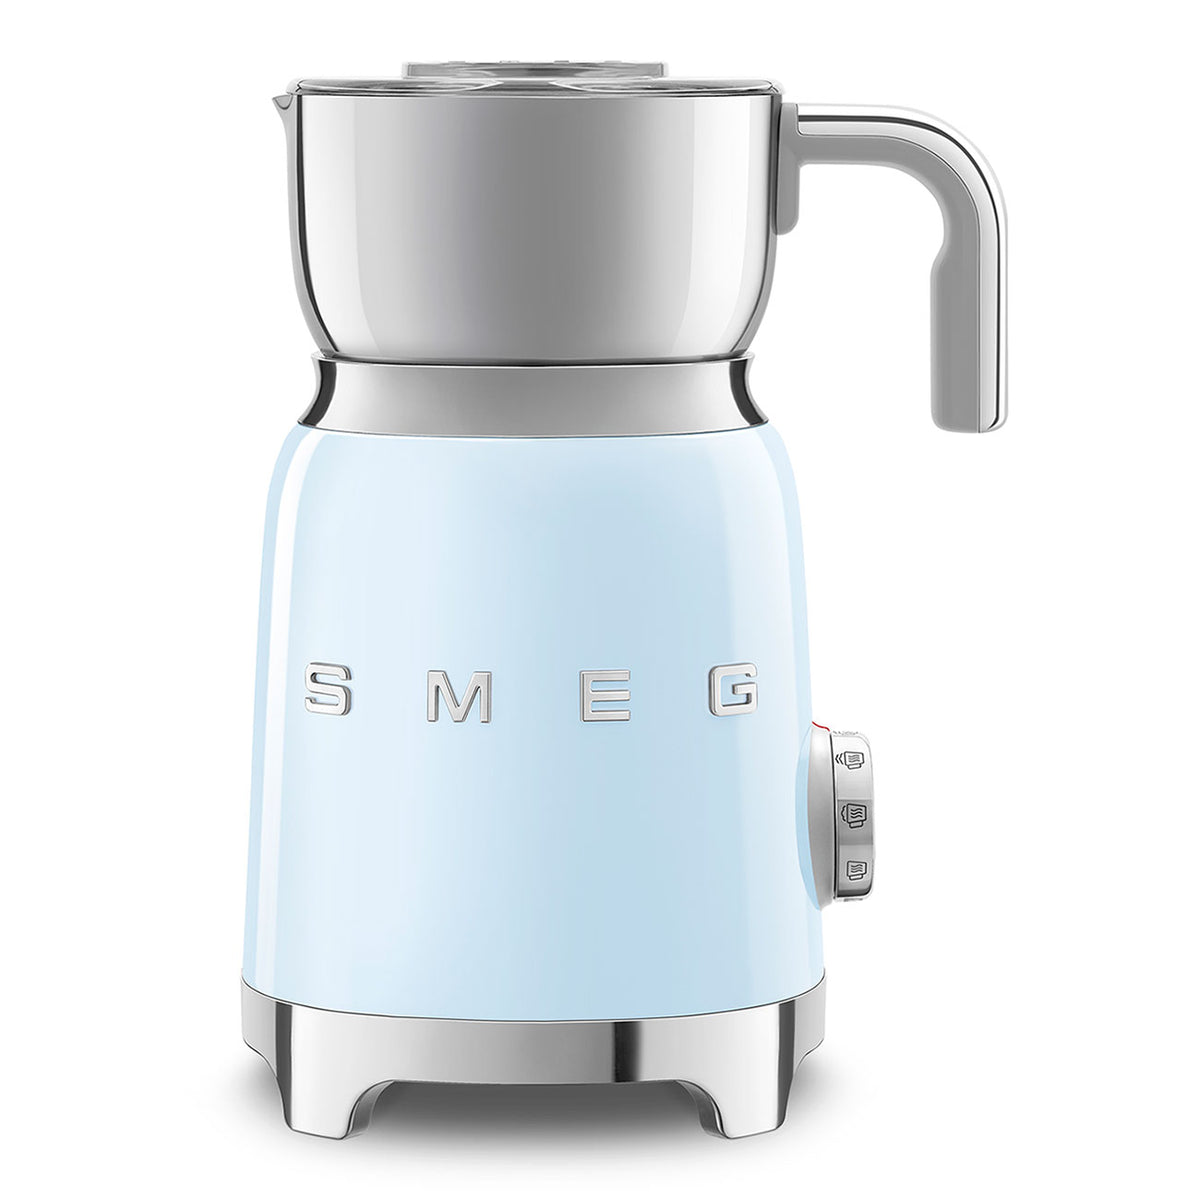 SMEG Milk Frother, Pastel Blue